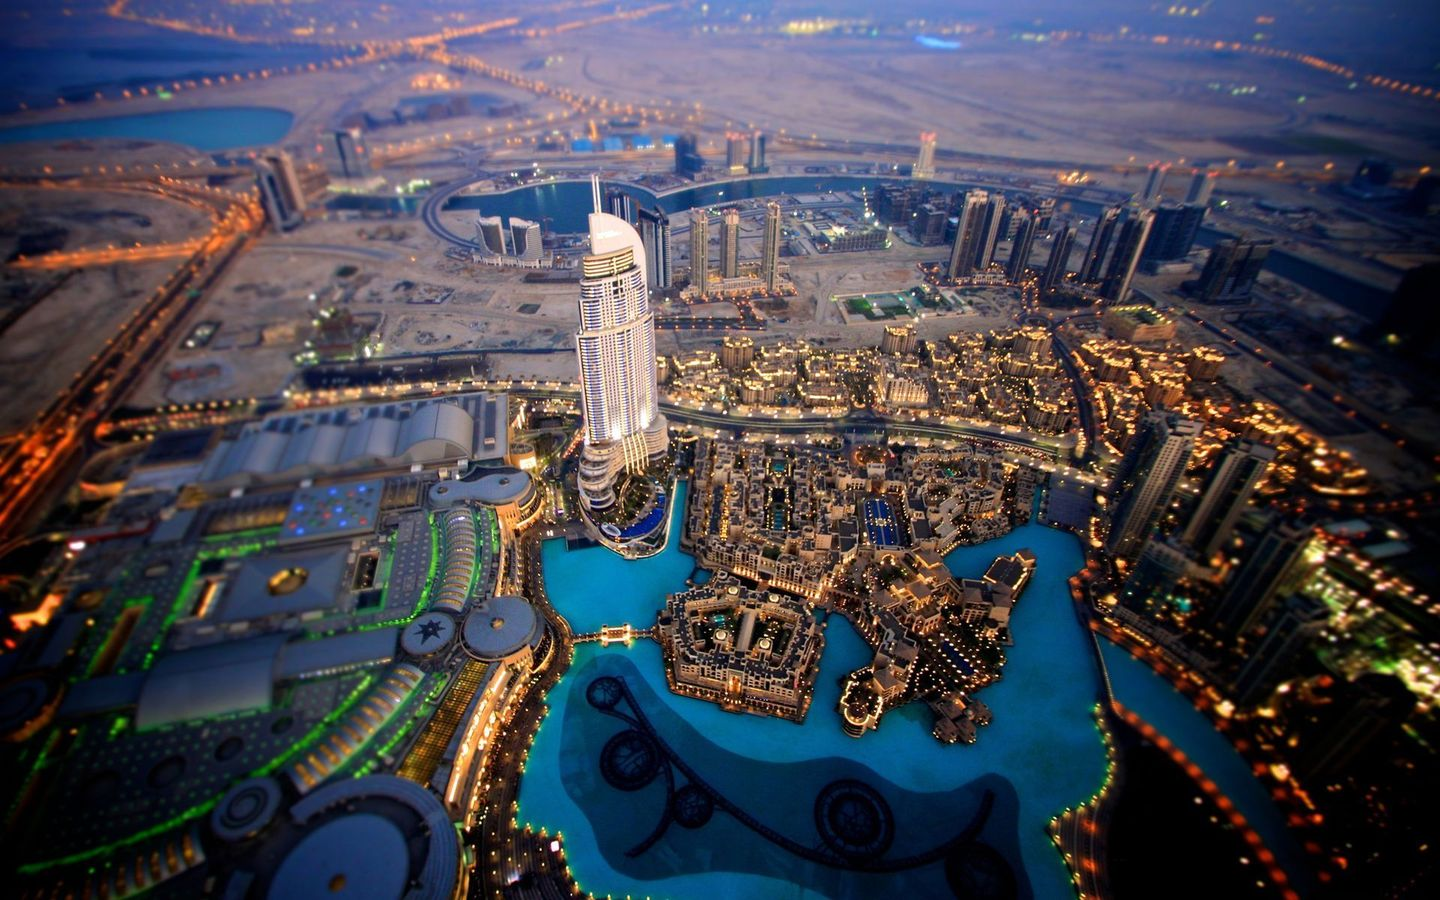 burj khalifa dubai the tallest building of world Dubai Tourism 